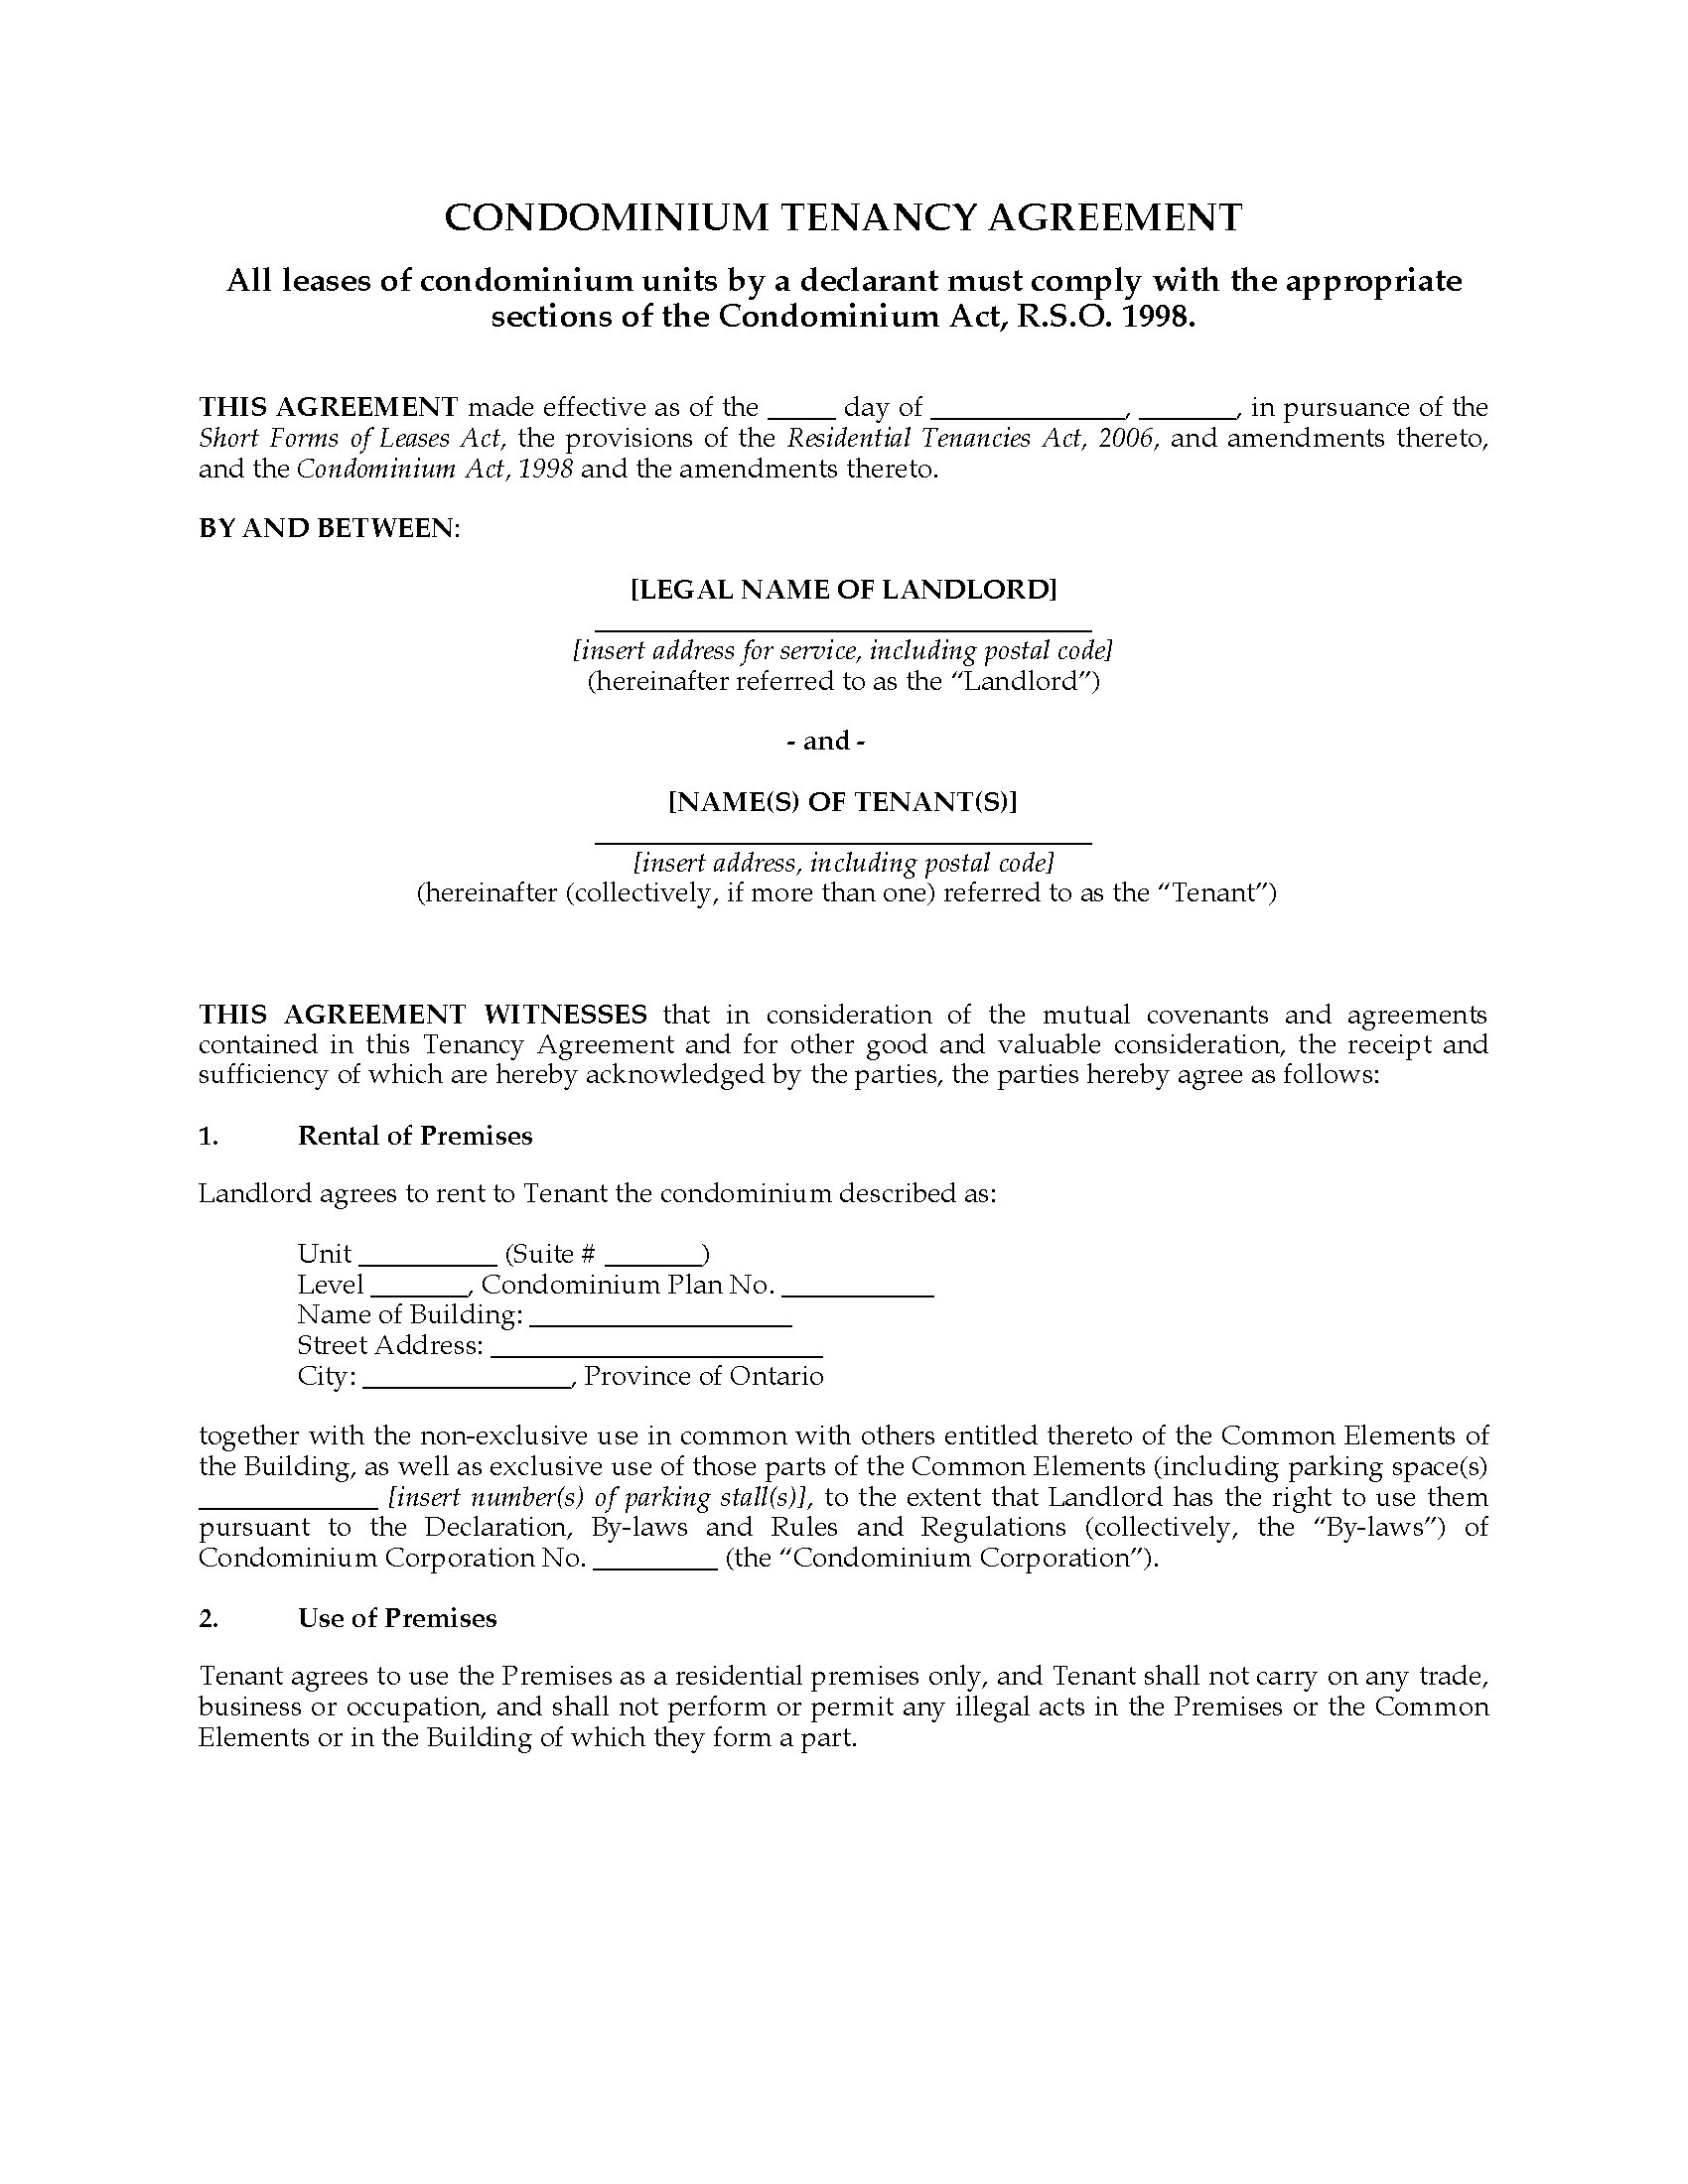 Ontario Condominium Tenancy Agreement | Legal Forms and Business ...